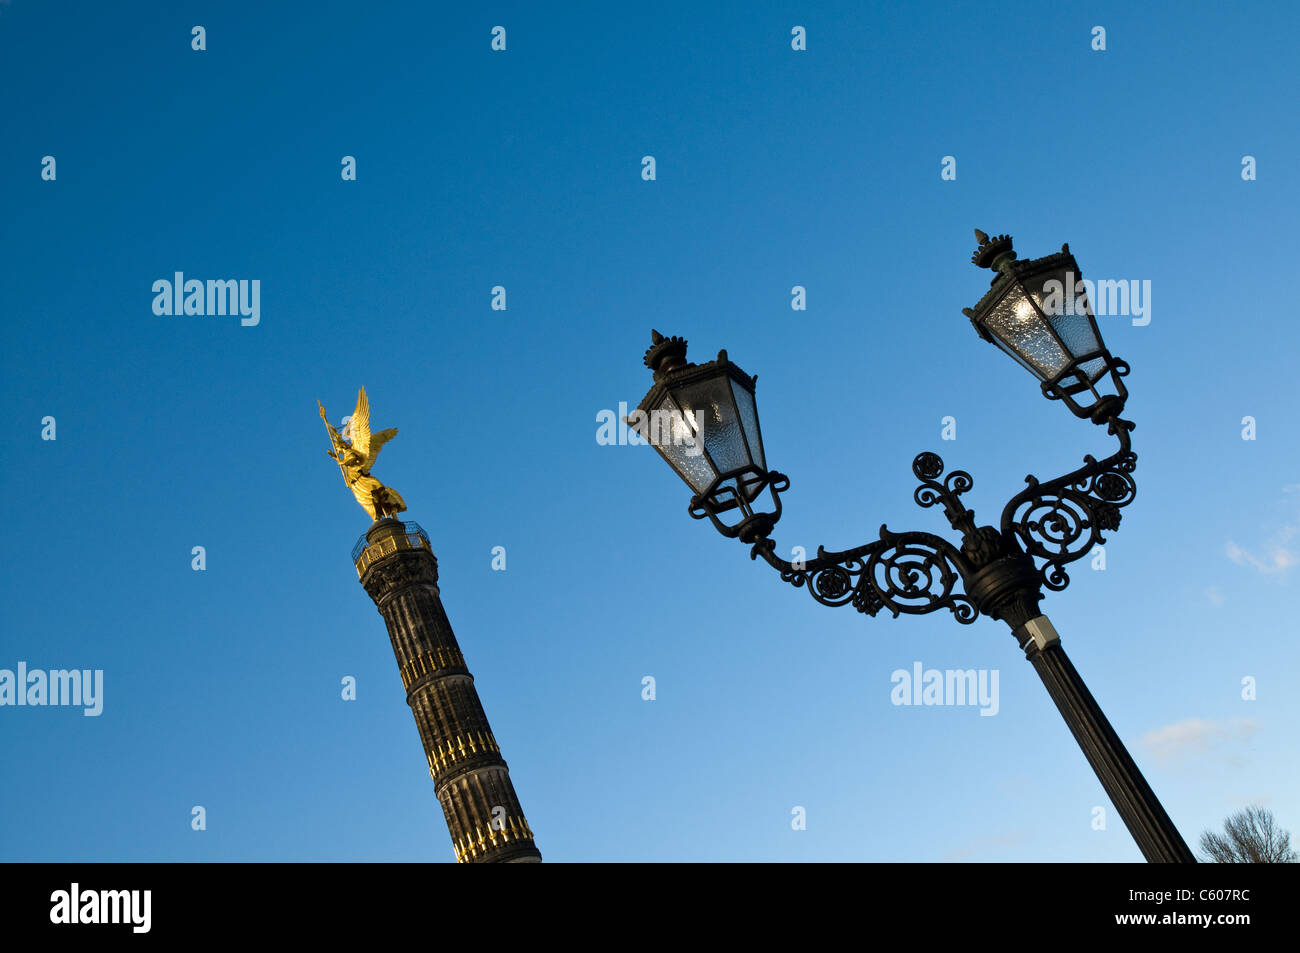 Victory column and ornamental lamp post, Berlin, Germany - Stock Image